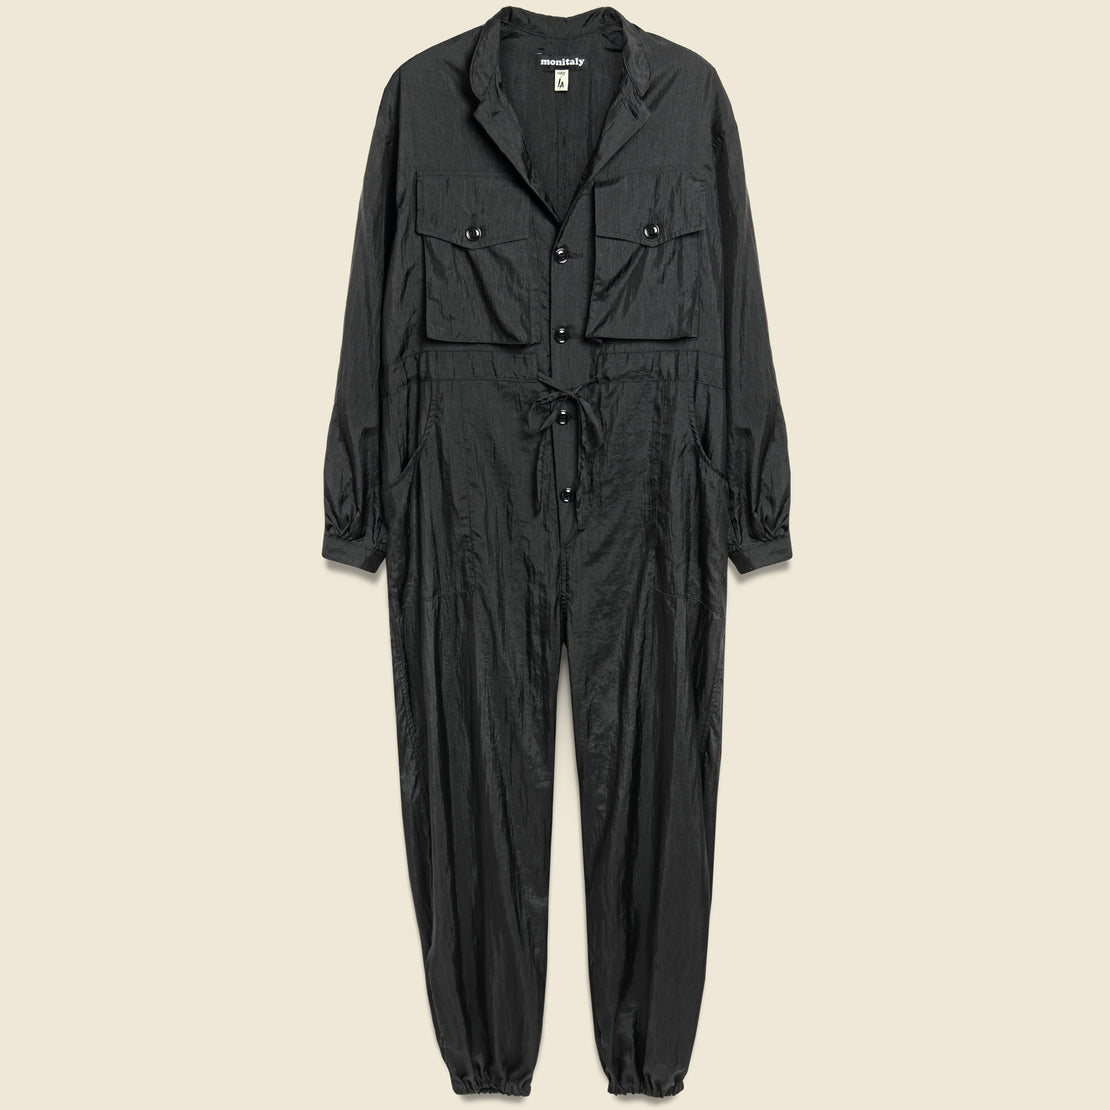 Monitaly Taslan Nylon Type-D Military Tsunagi Jumpsuit - Black